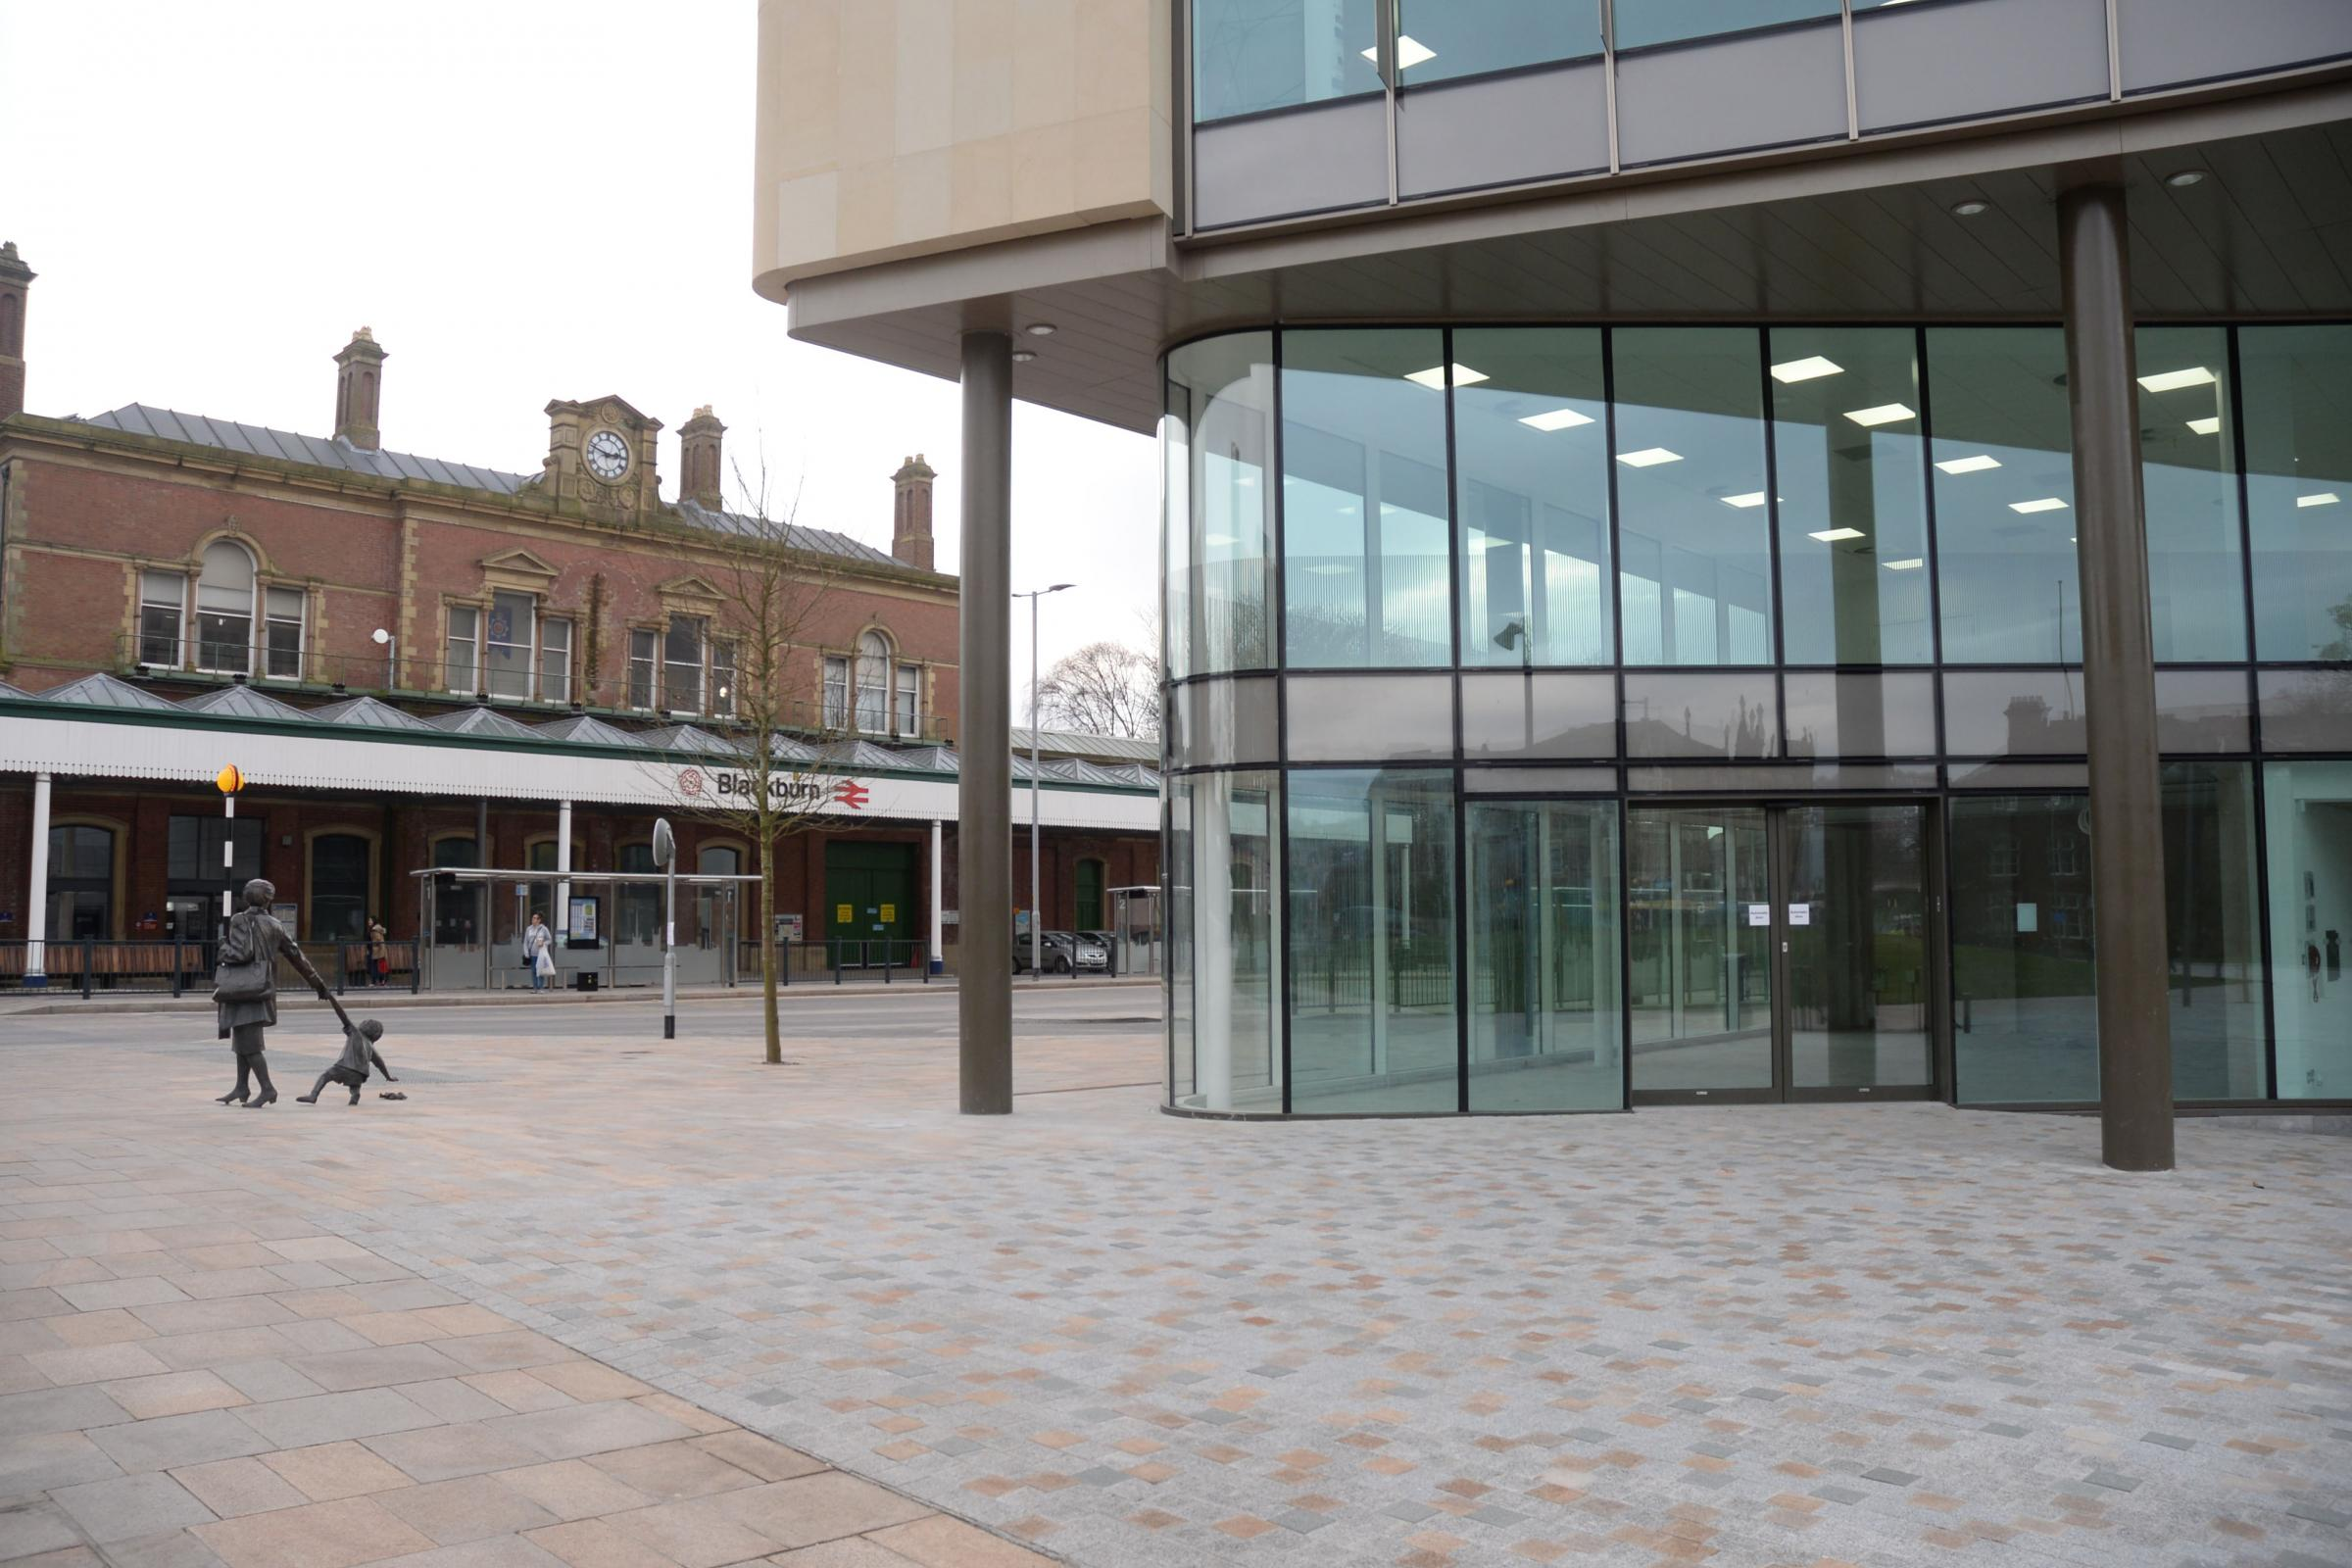 Dessert bar becomes first tenant of Blackburn's Cathedral Quarter office block